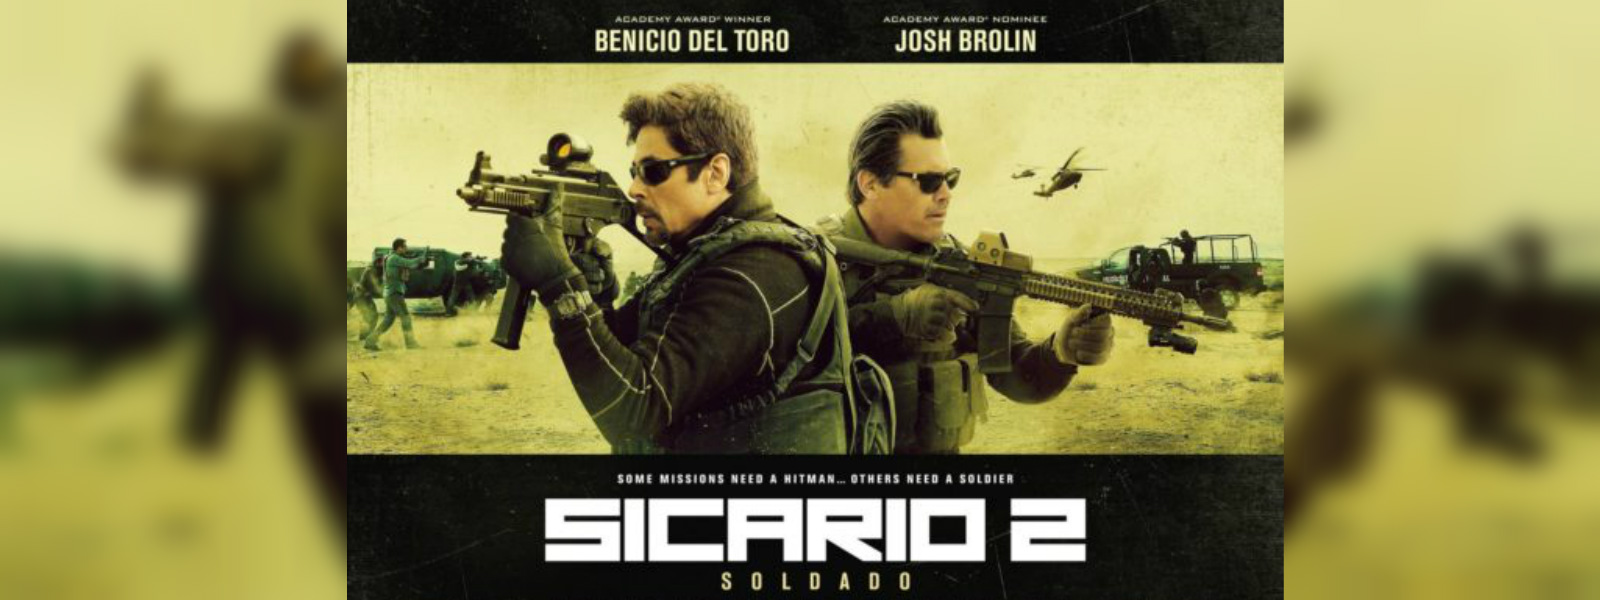 Sequel to acclaimed hit 'Sicario' launches in Los Angeles